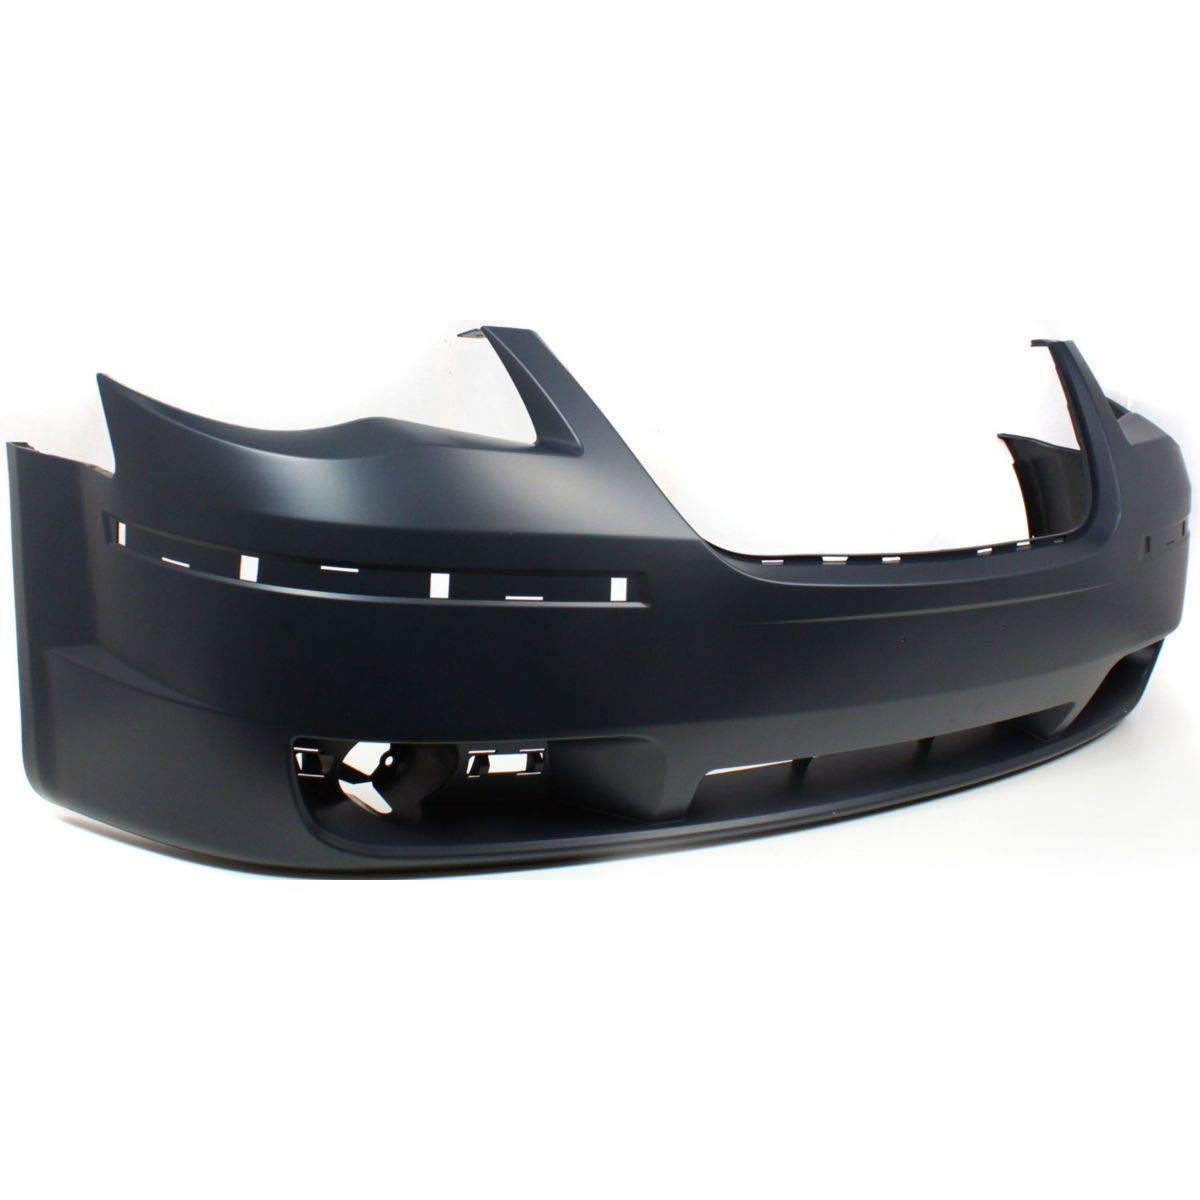 Primered CH1000929 BUMPERS THAT DELIVER Front Bumper Cover Fascia for 2008 2009 2010 Chrysler Town /& Country 08 09 10